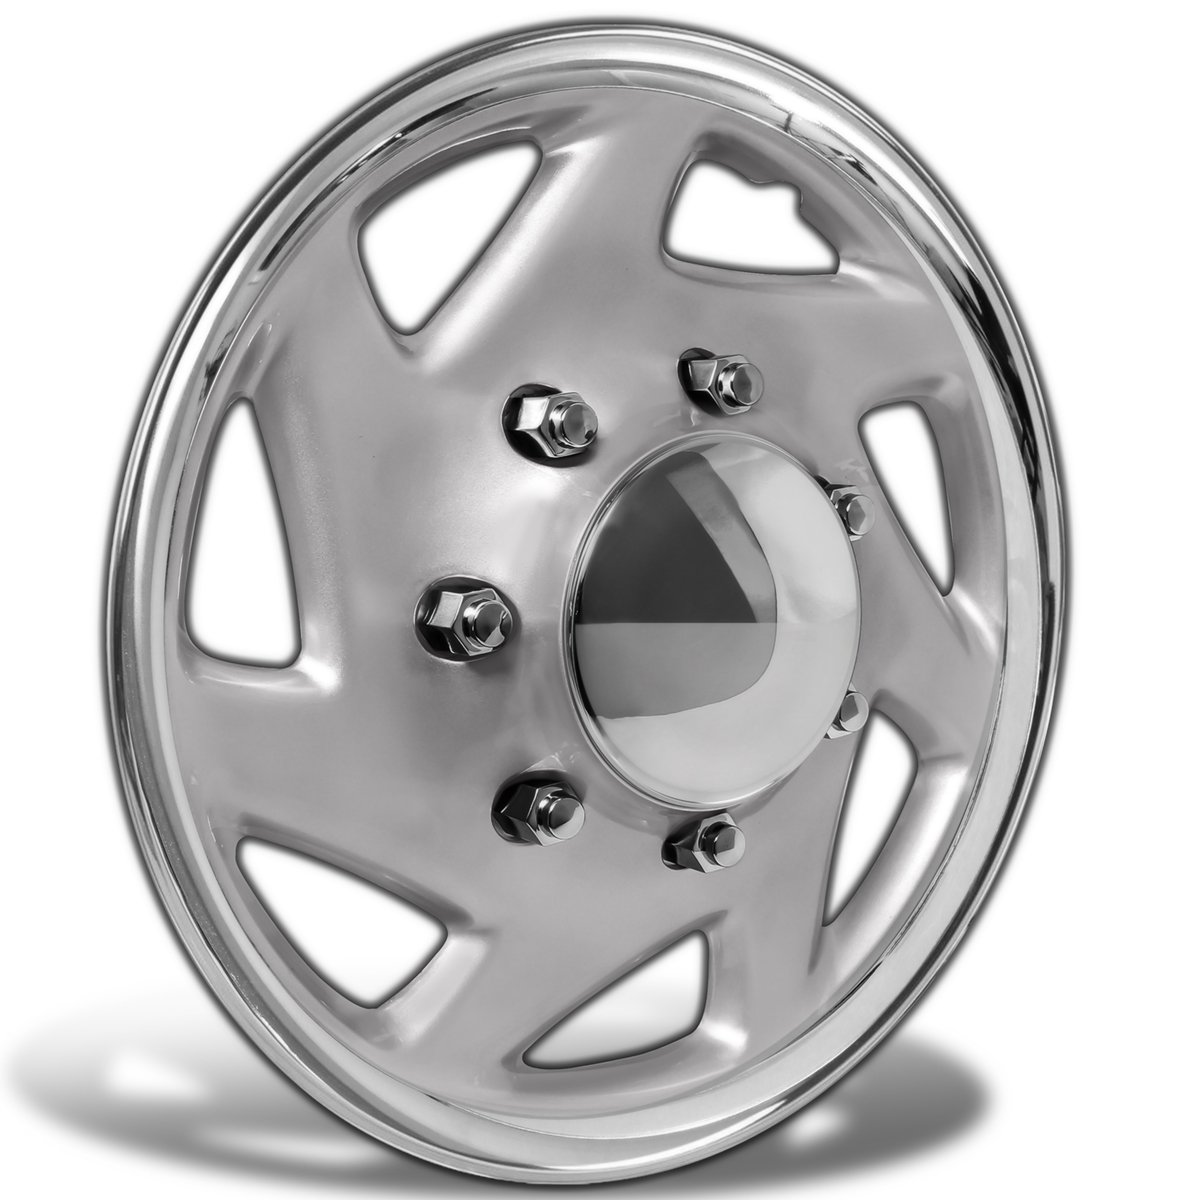 Amazon com hubcaps for select trucks cargo vans pack of 4 wheel covers 16 inch 7 spoke snap on silver chrome automotive